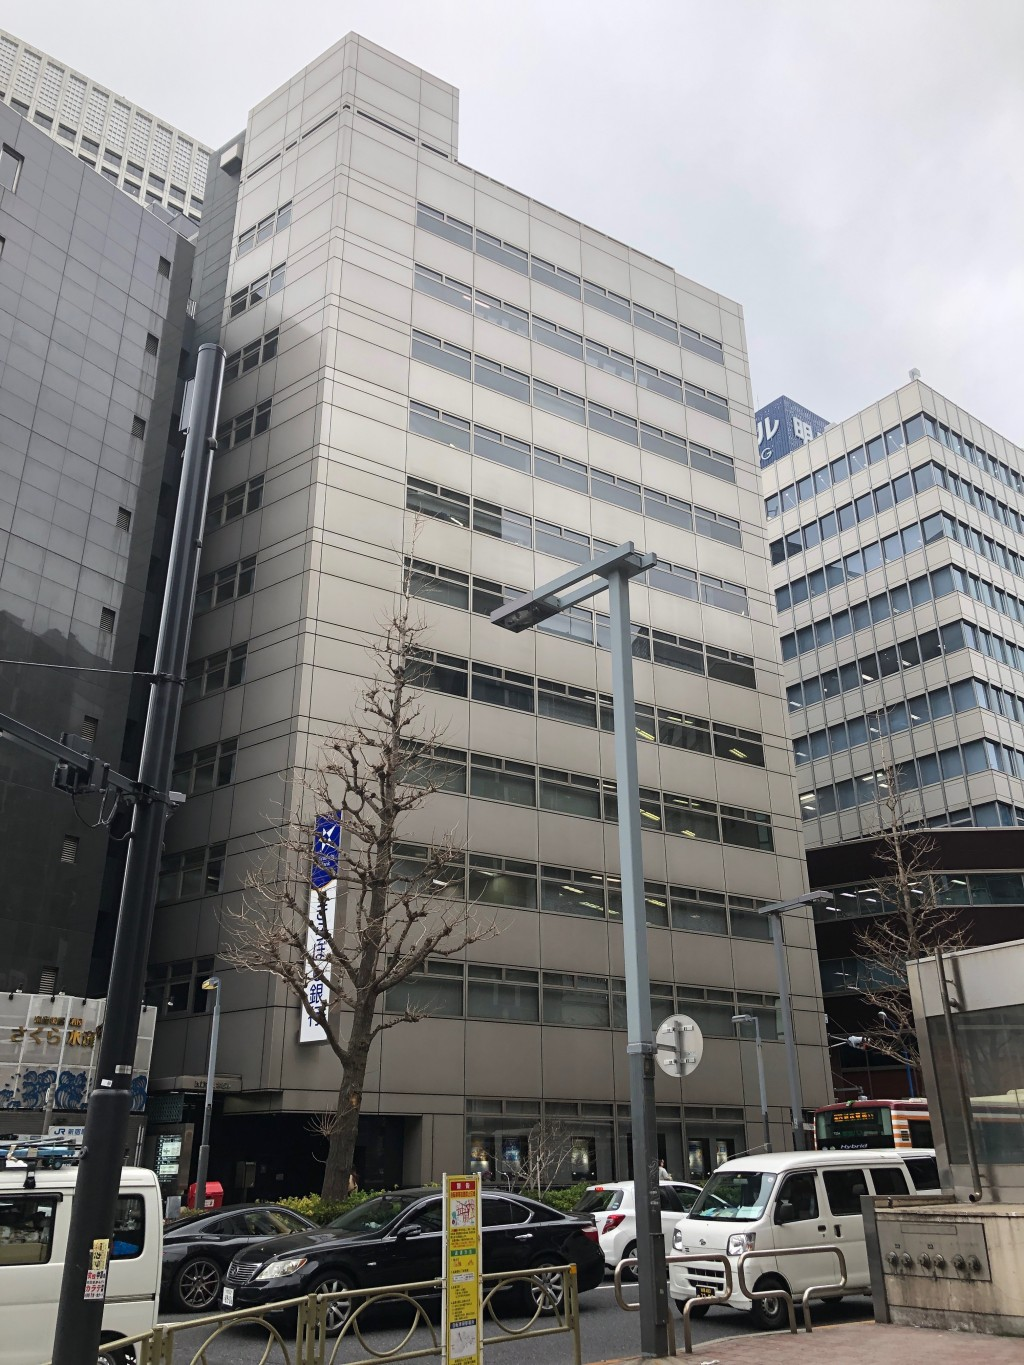 This Friday, March 22, 2019 photo shows the exterior of the Nishi Shinjuku-Takagi Building in Tokyo. The building was allegedly the home of NPH Invest